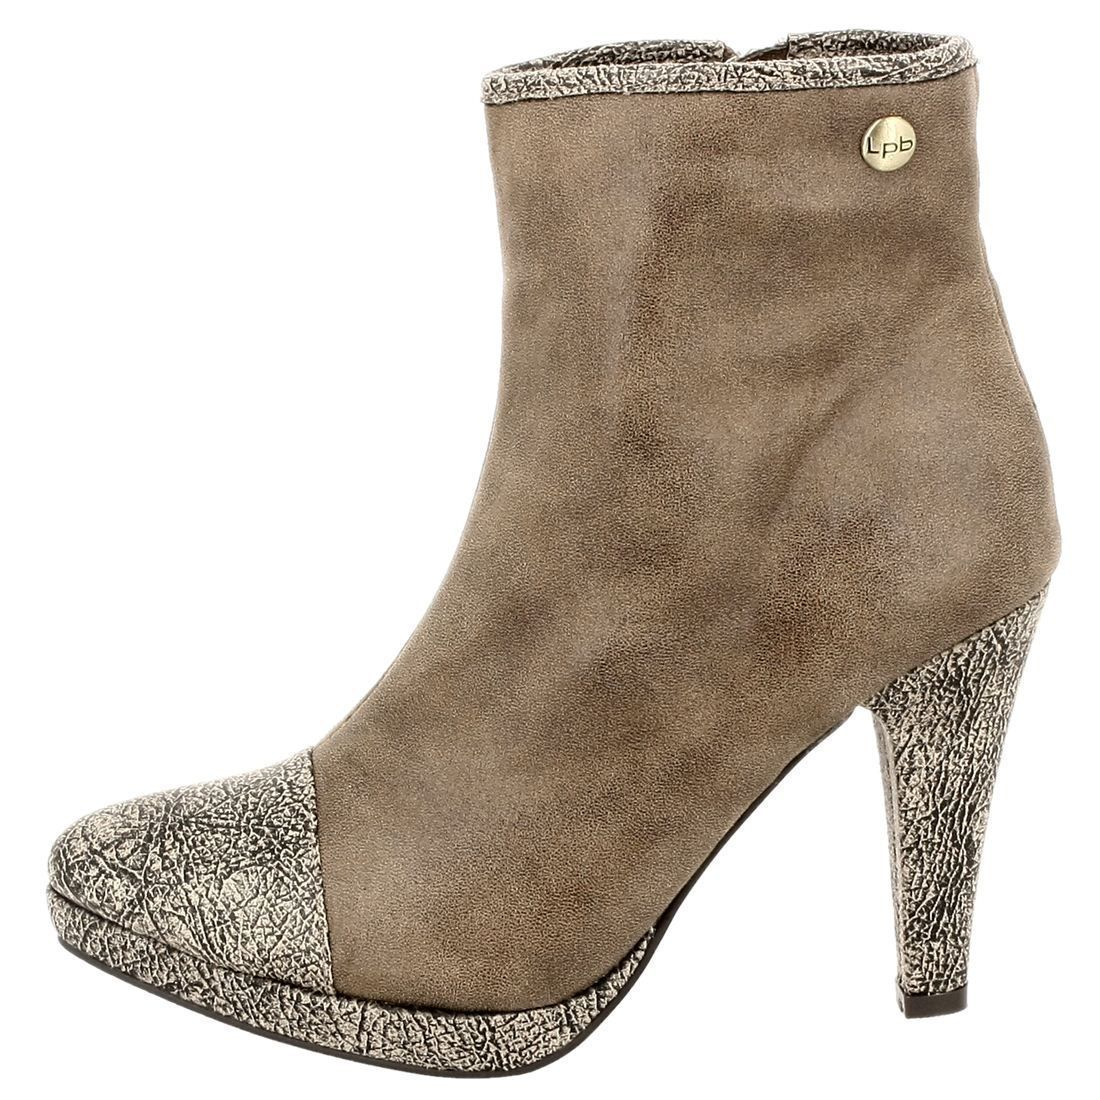 KICK COL AUDE:BEIGE/SIMILI CUIR/TEXTILE/SYNTHETIQUE/Beige